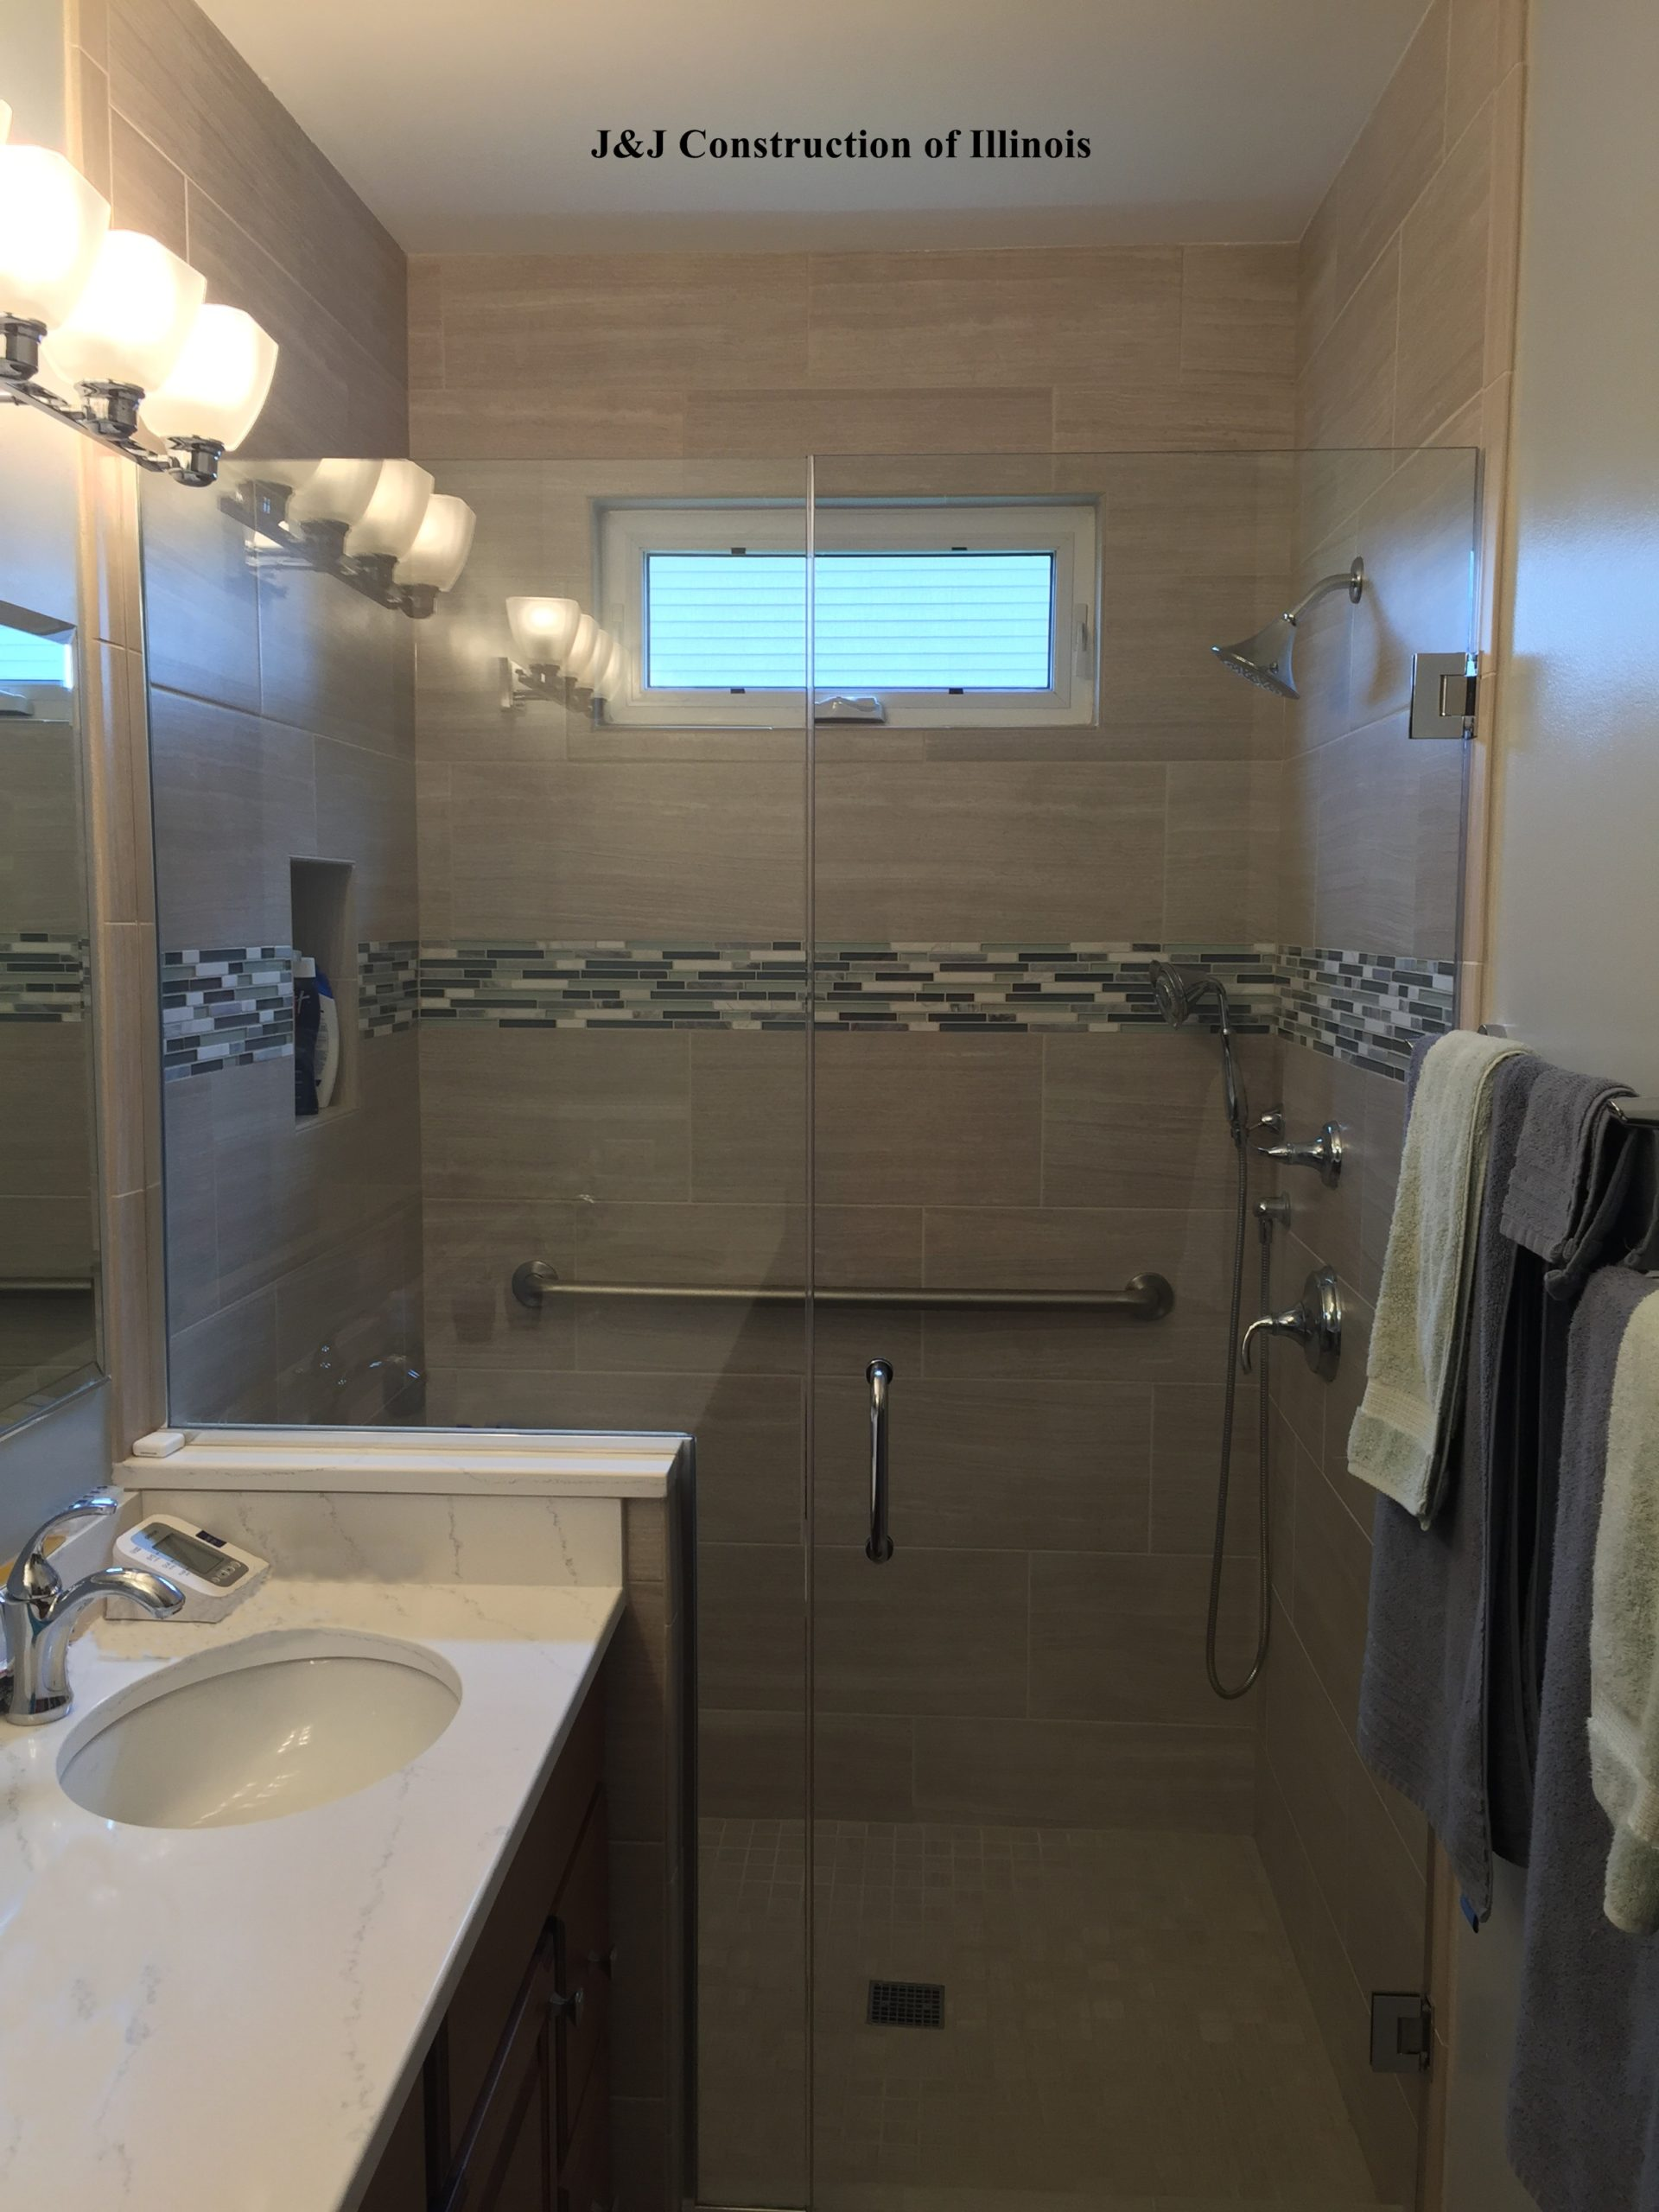 A Naperville Bathroom Remodel that Took Just 7 Days!